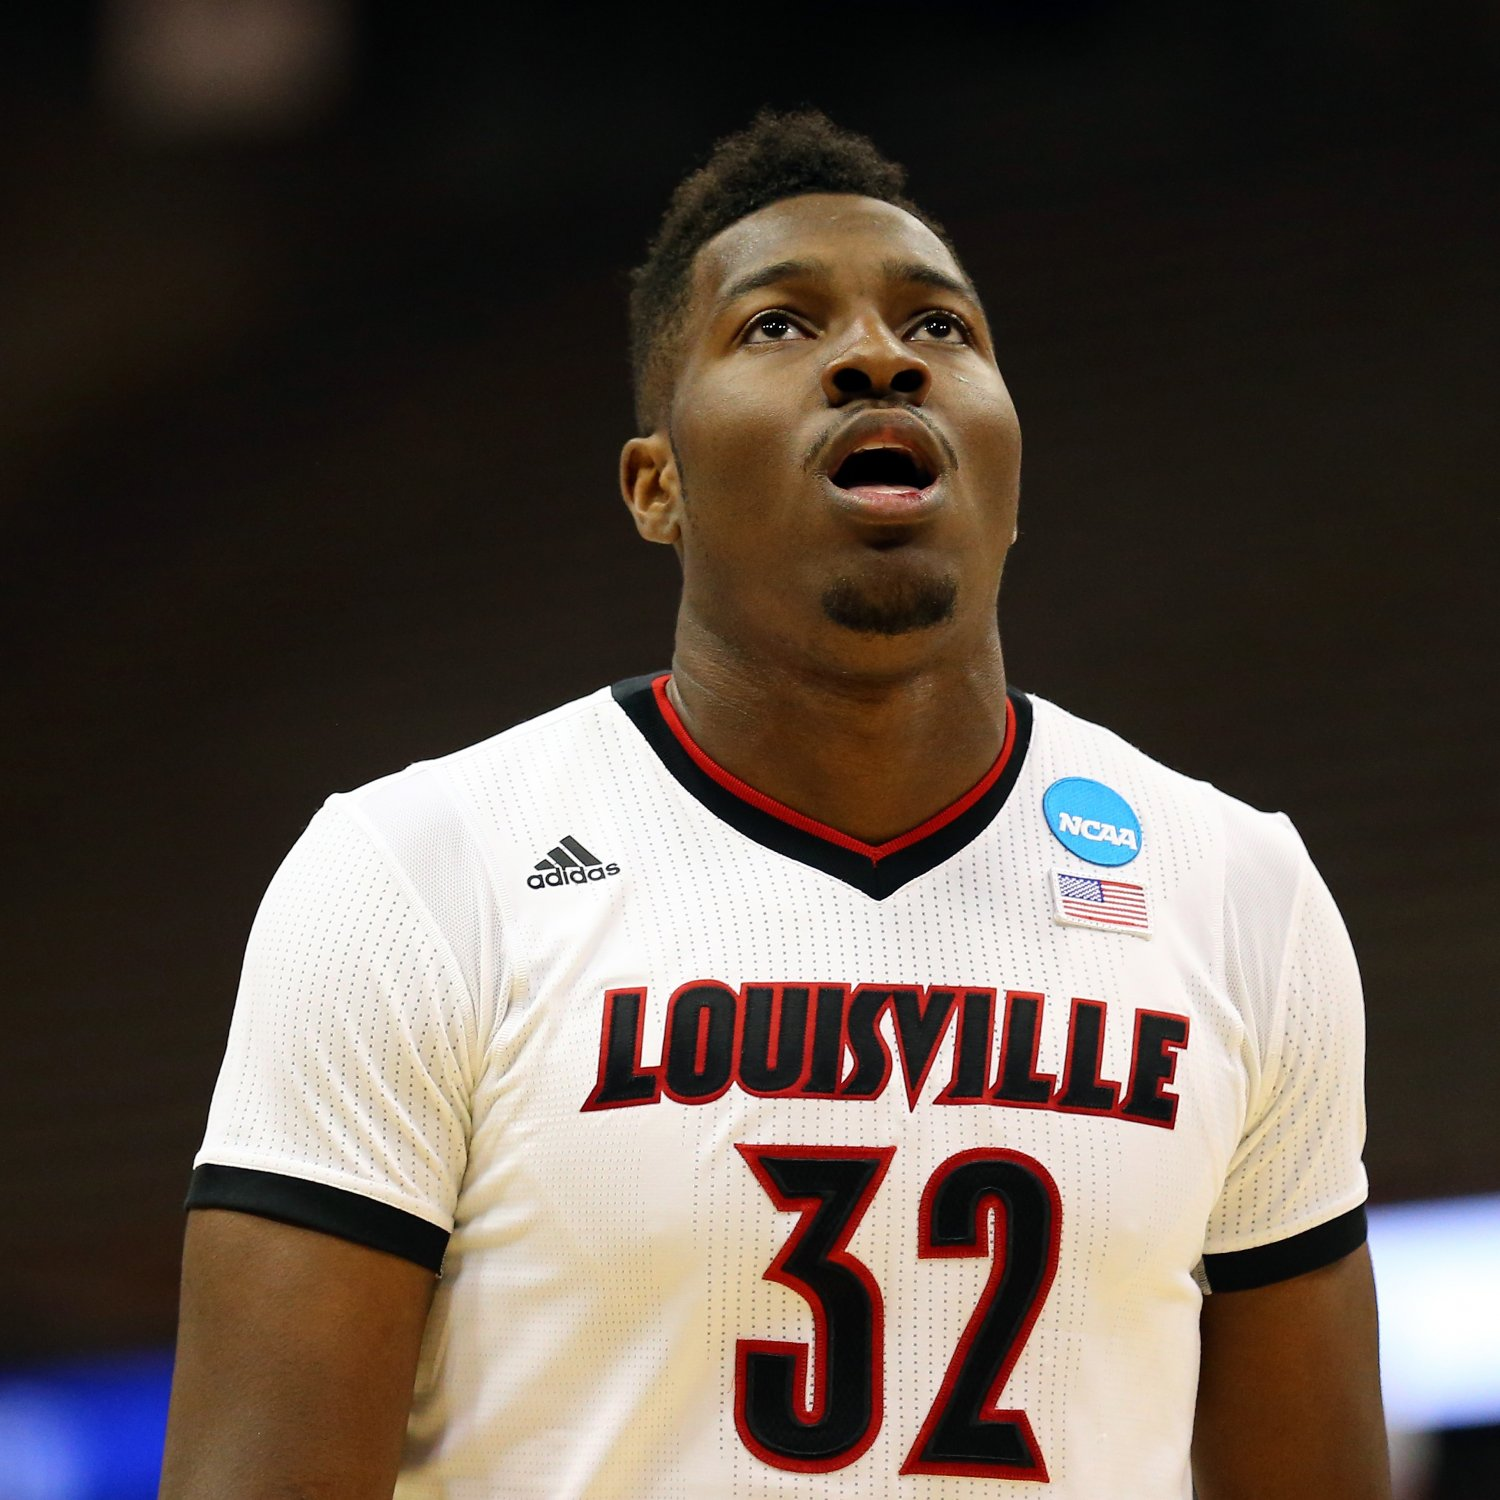 Shooting In Louisville Colorado: Onuaku's Granny-Style Free Throws And Top 2016 Shooter